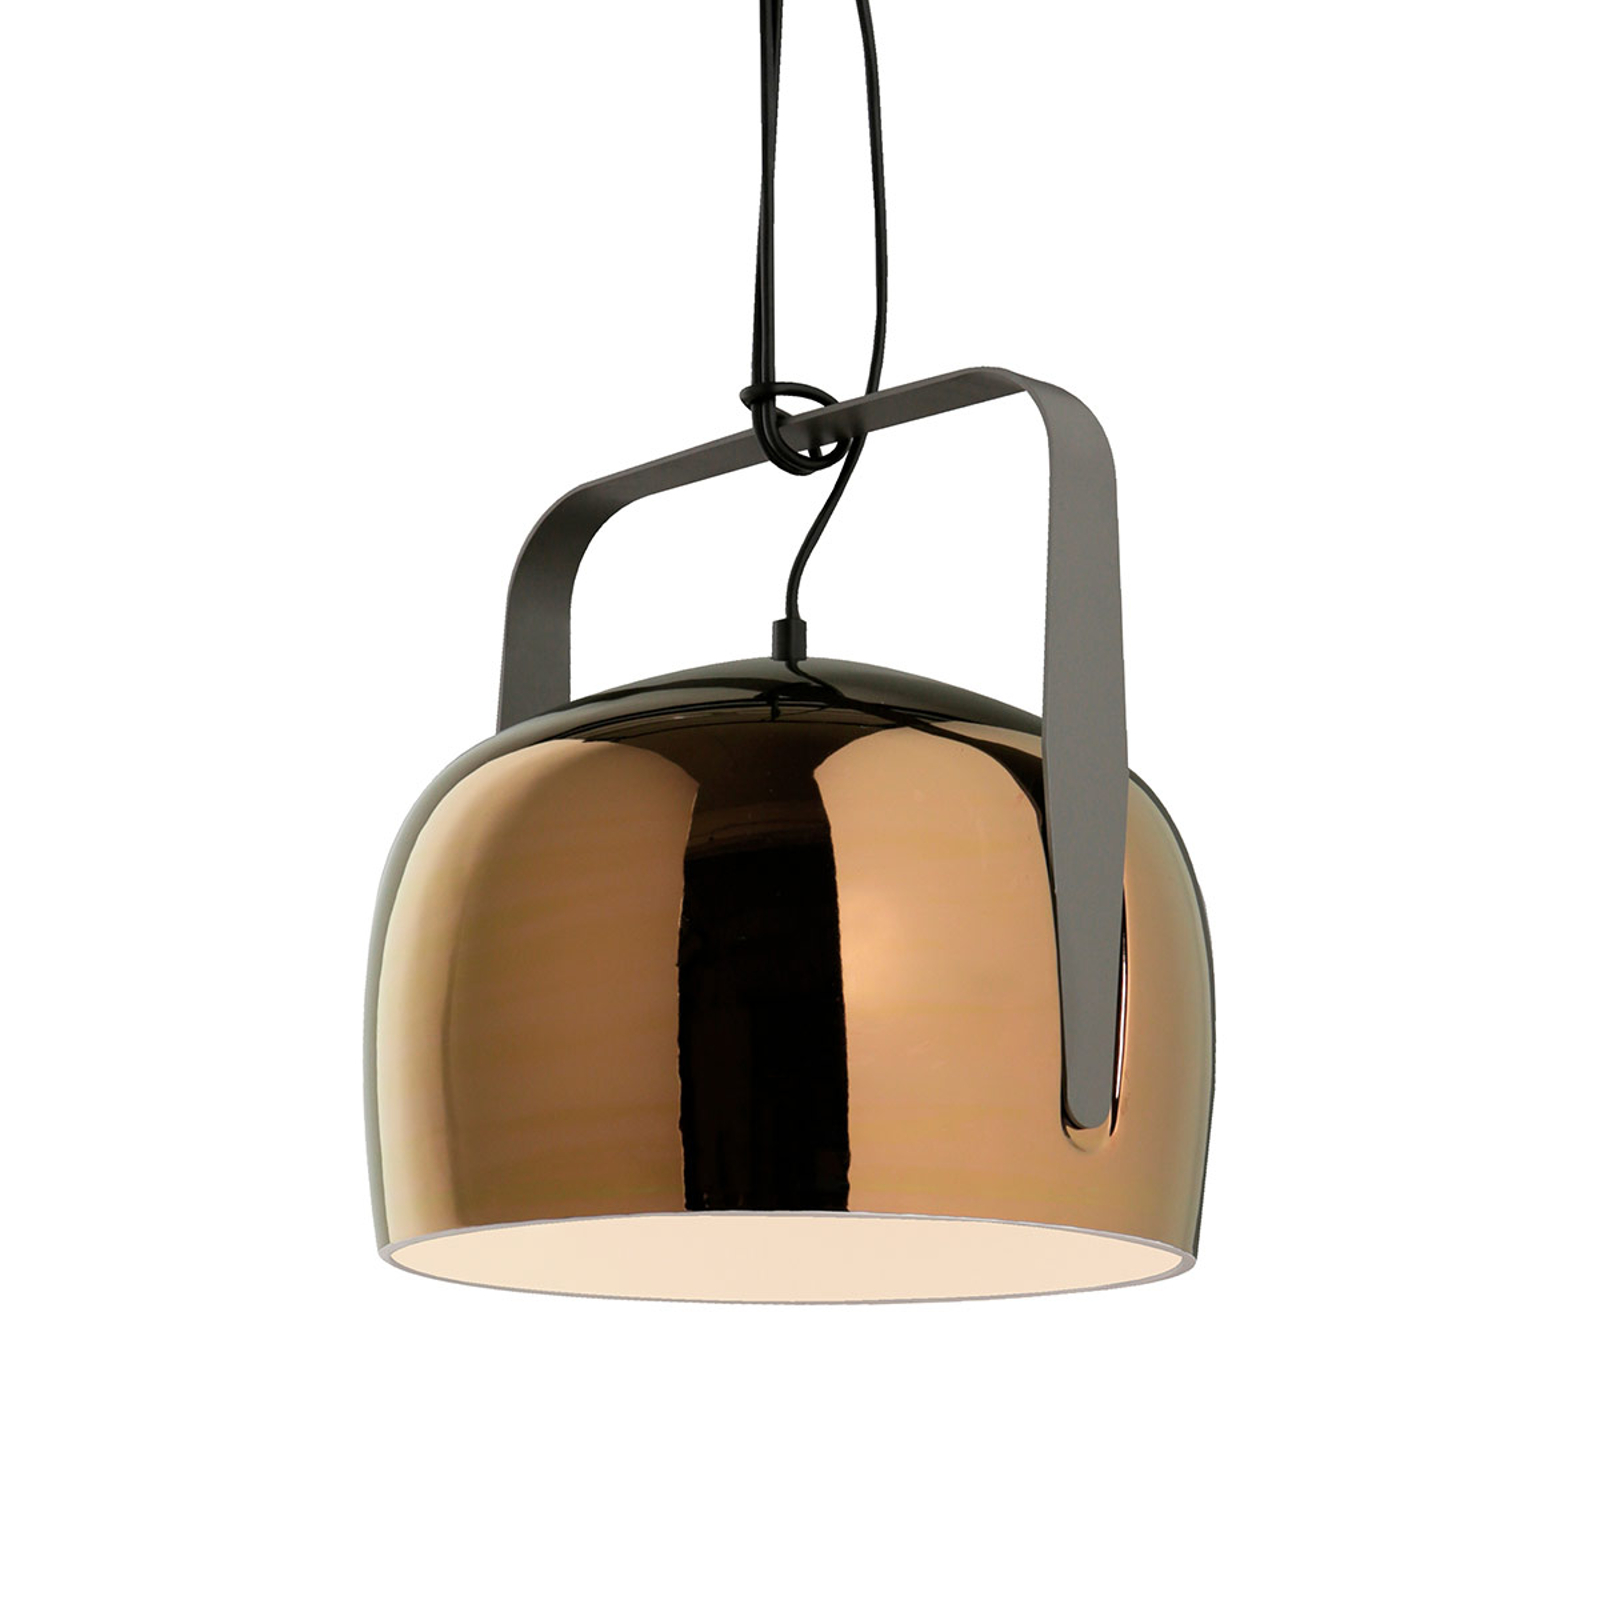 Karman Bag - suspension, 21 cm, bronze